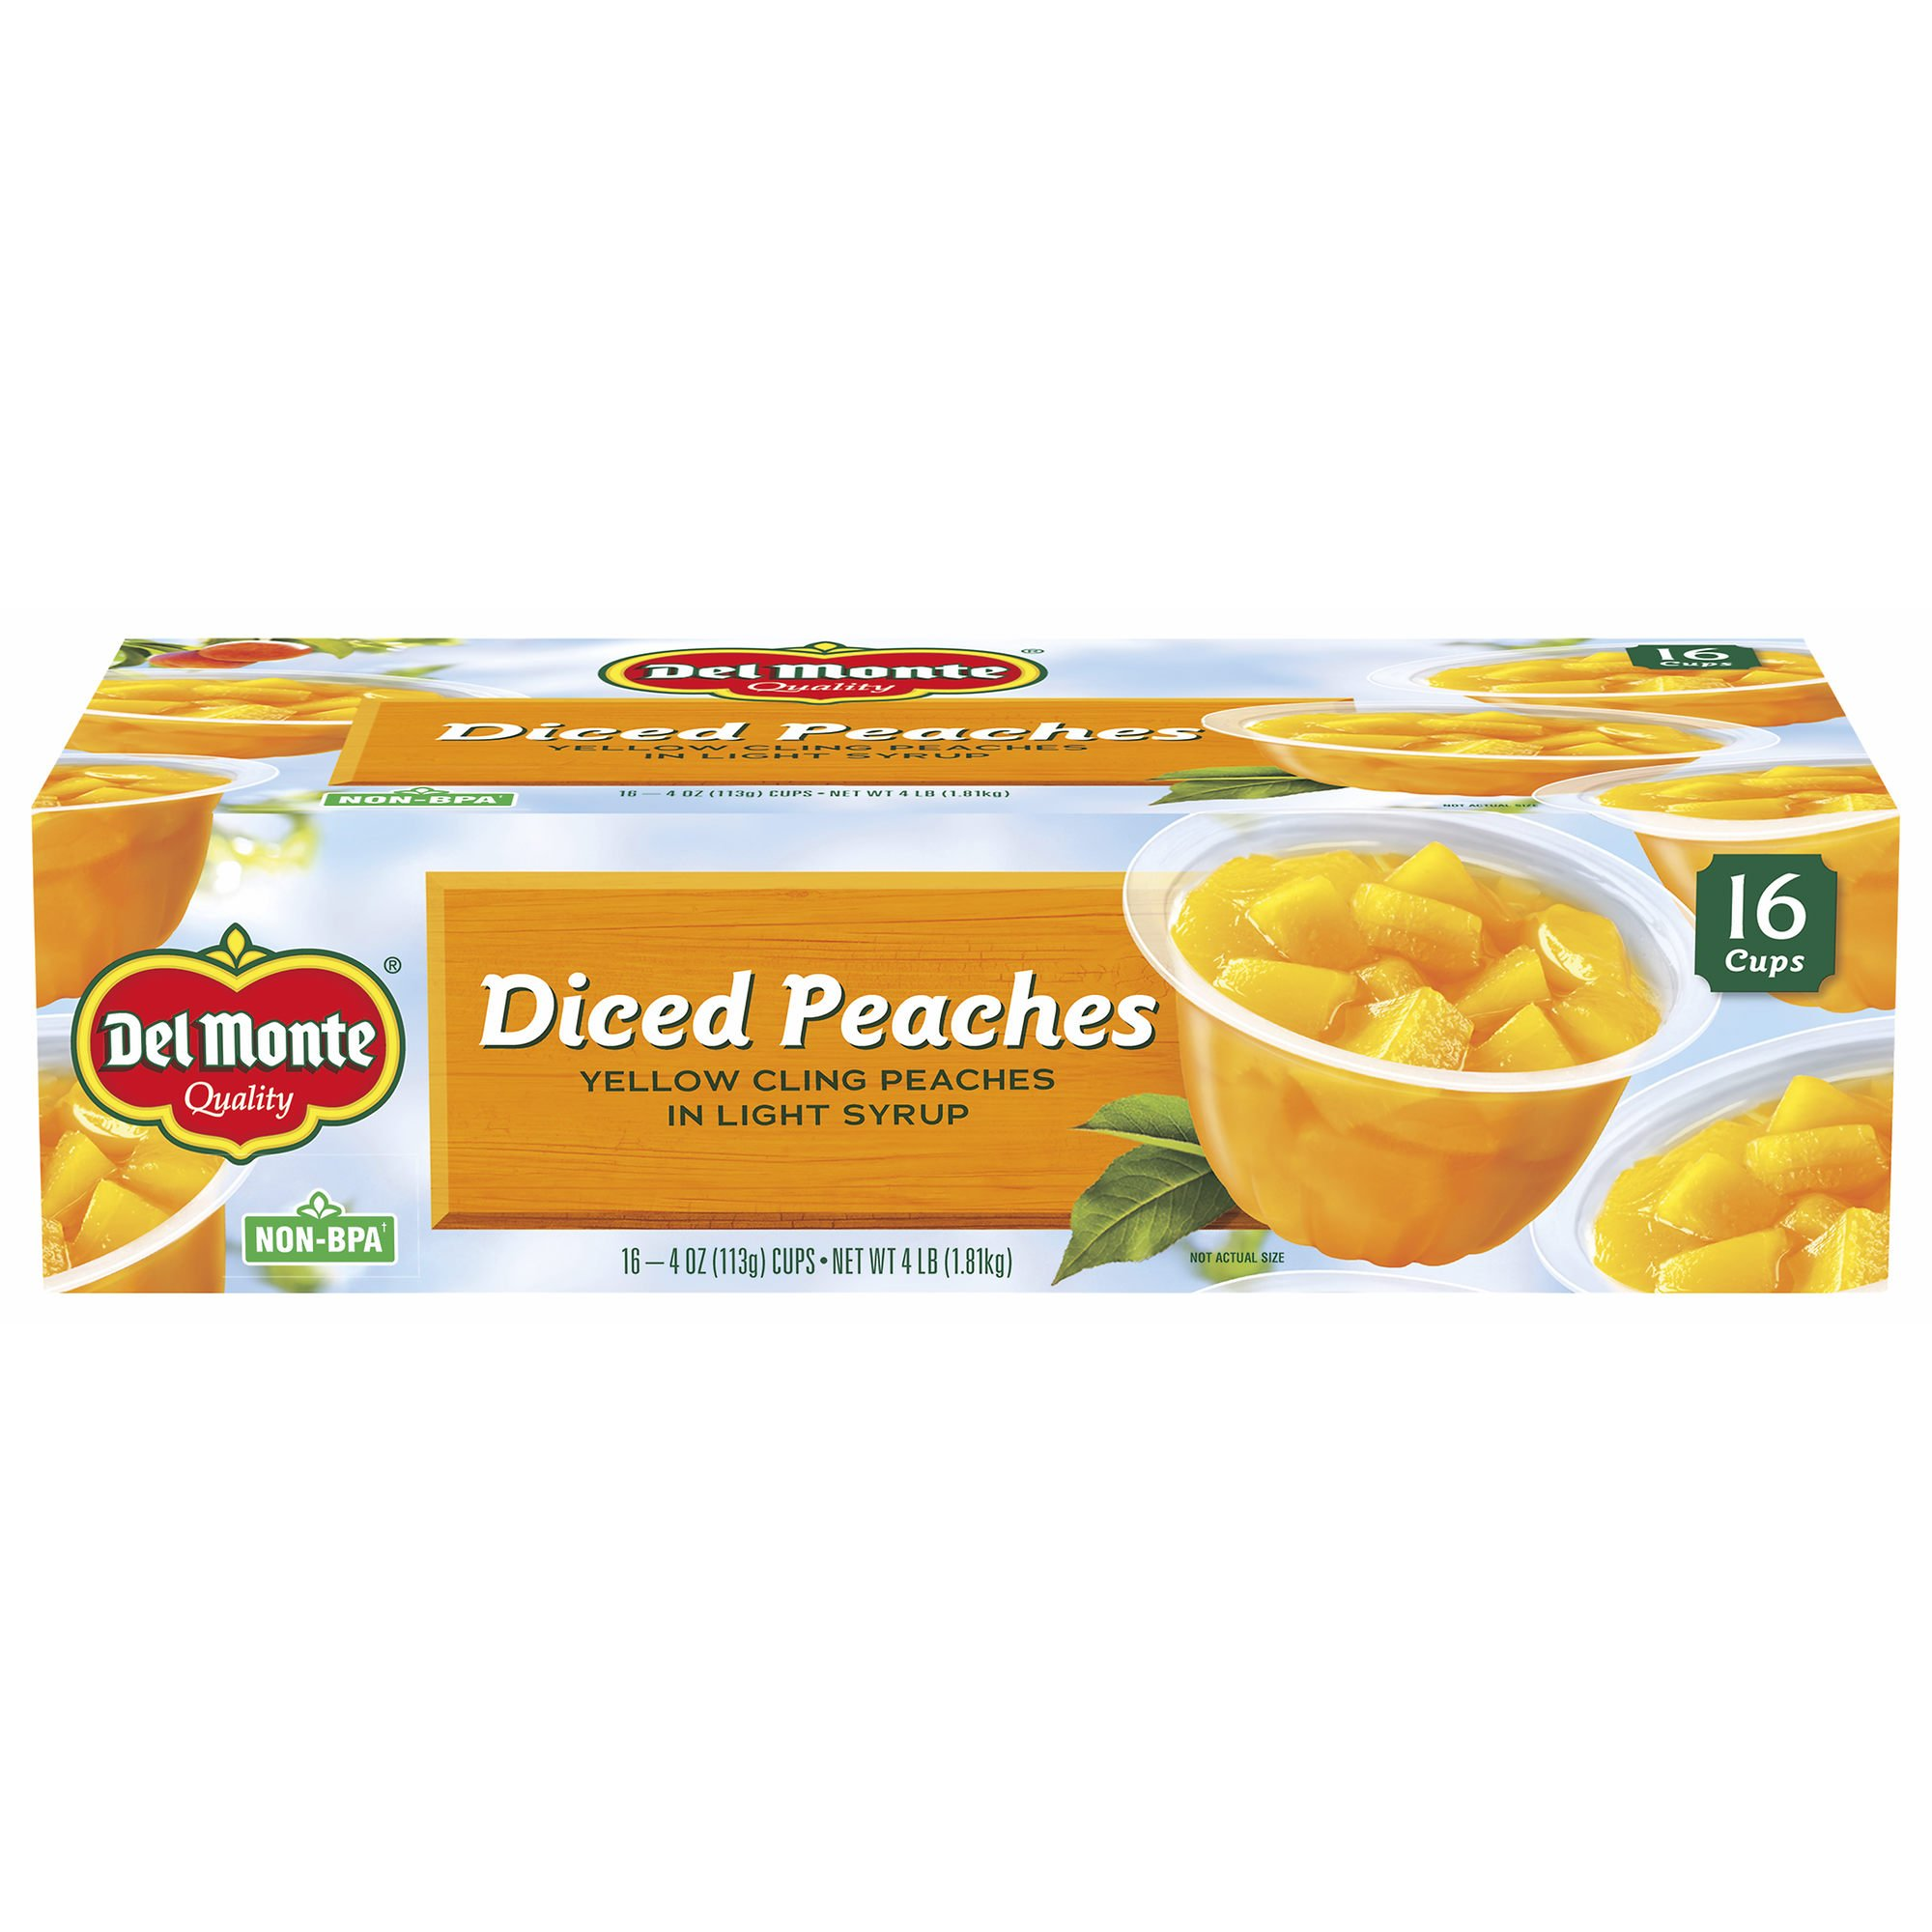 Del Monte Diced Peaches in Light Syrup, 16 pk./4 oz. (pack of 6) by Del Monte